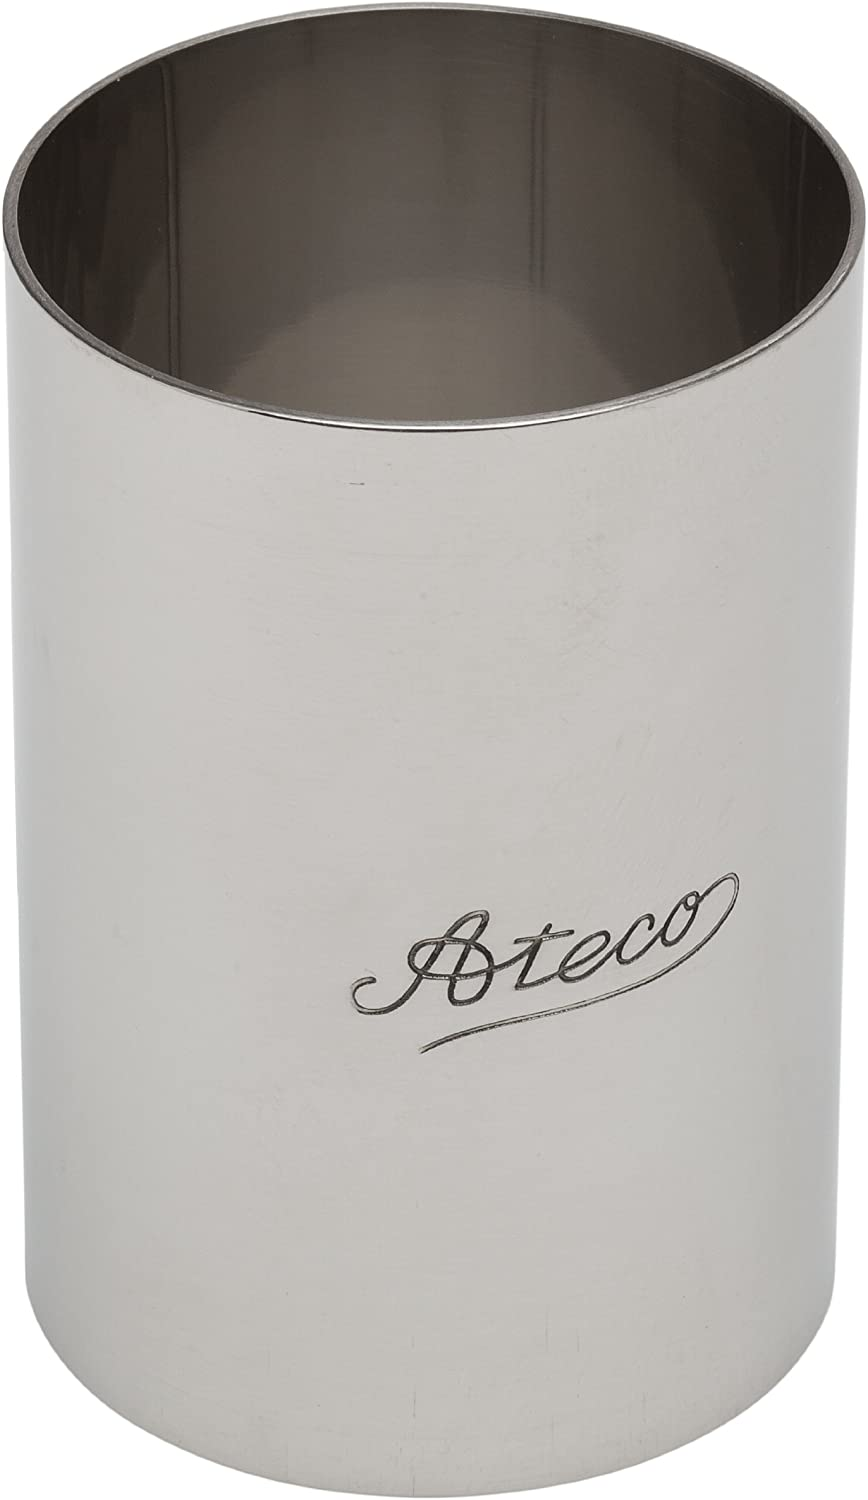 Ateco 4909 Round Stainless Steel Form, 2 by 3-Inches High